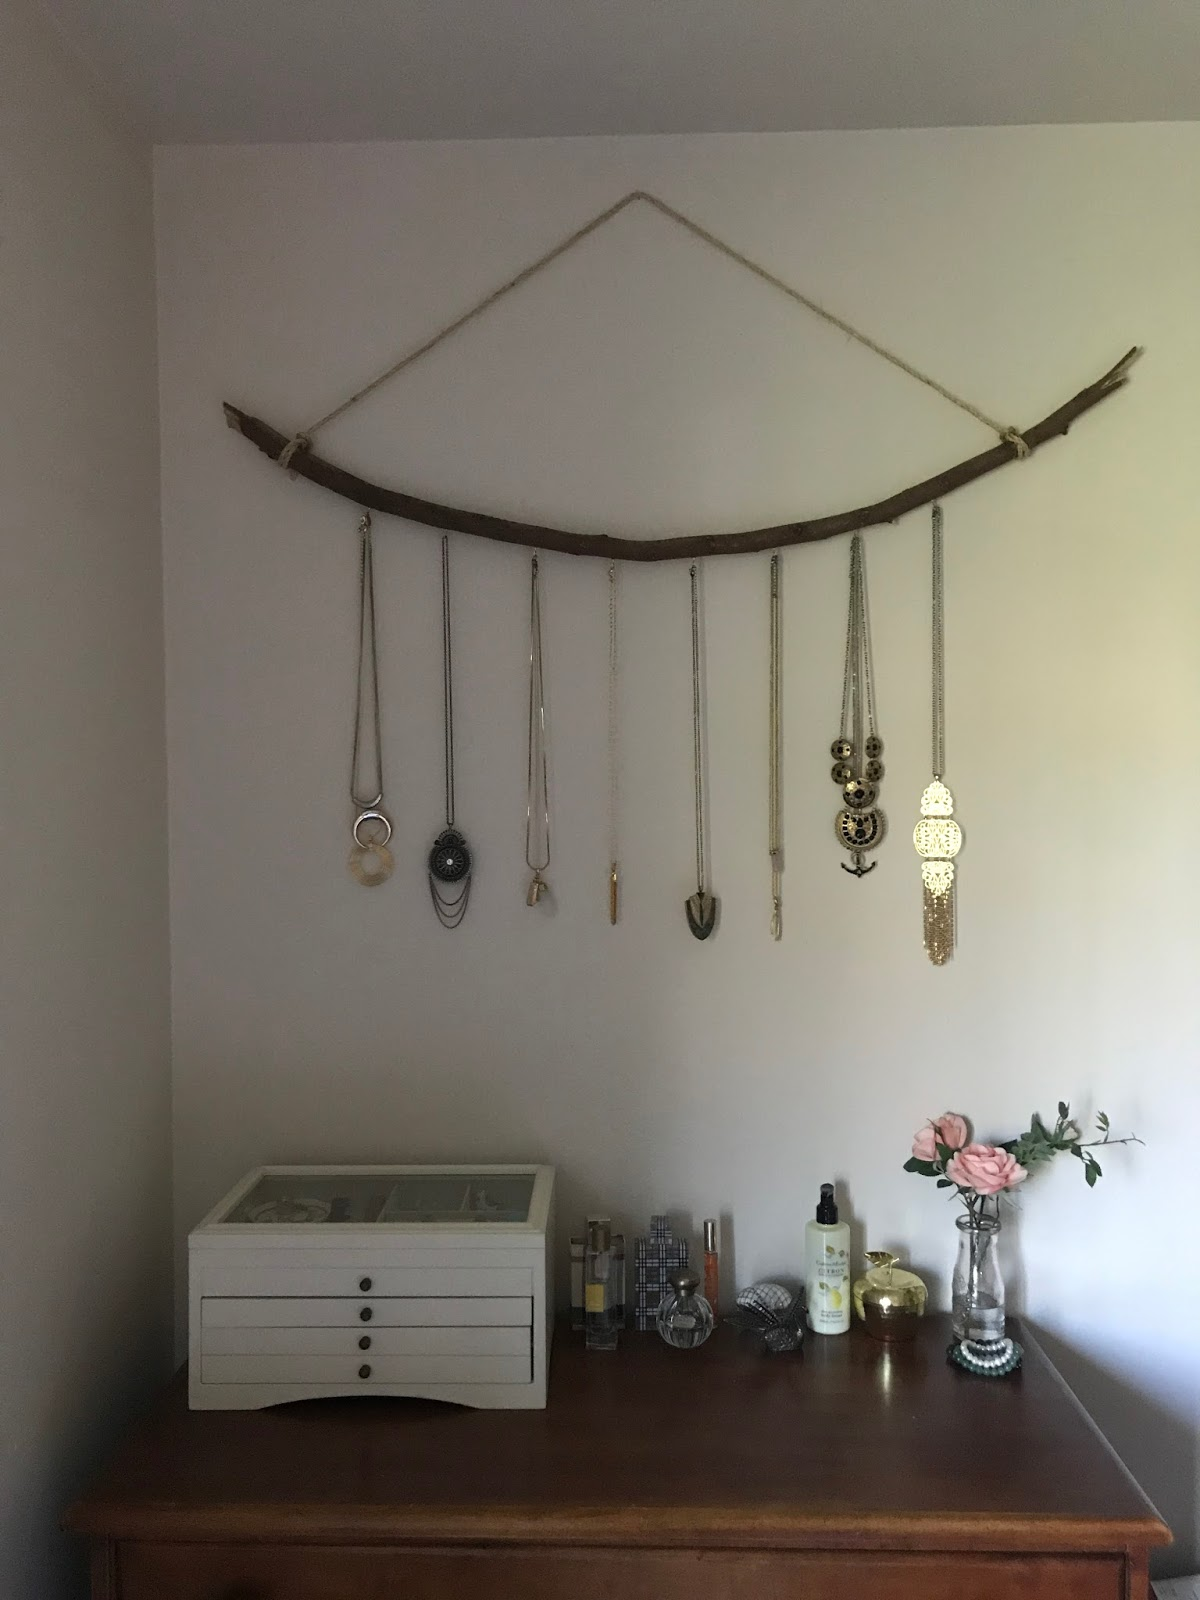 Peplums pie how to make a jewelry hanger out of tree branches how to make a jewelry hanger out of tree branches do it yourself solutioingenieria Choice Image